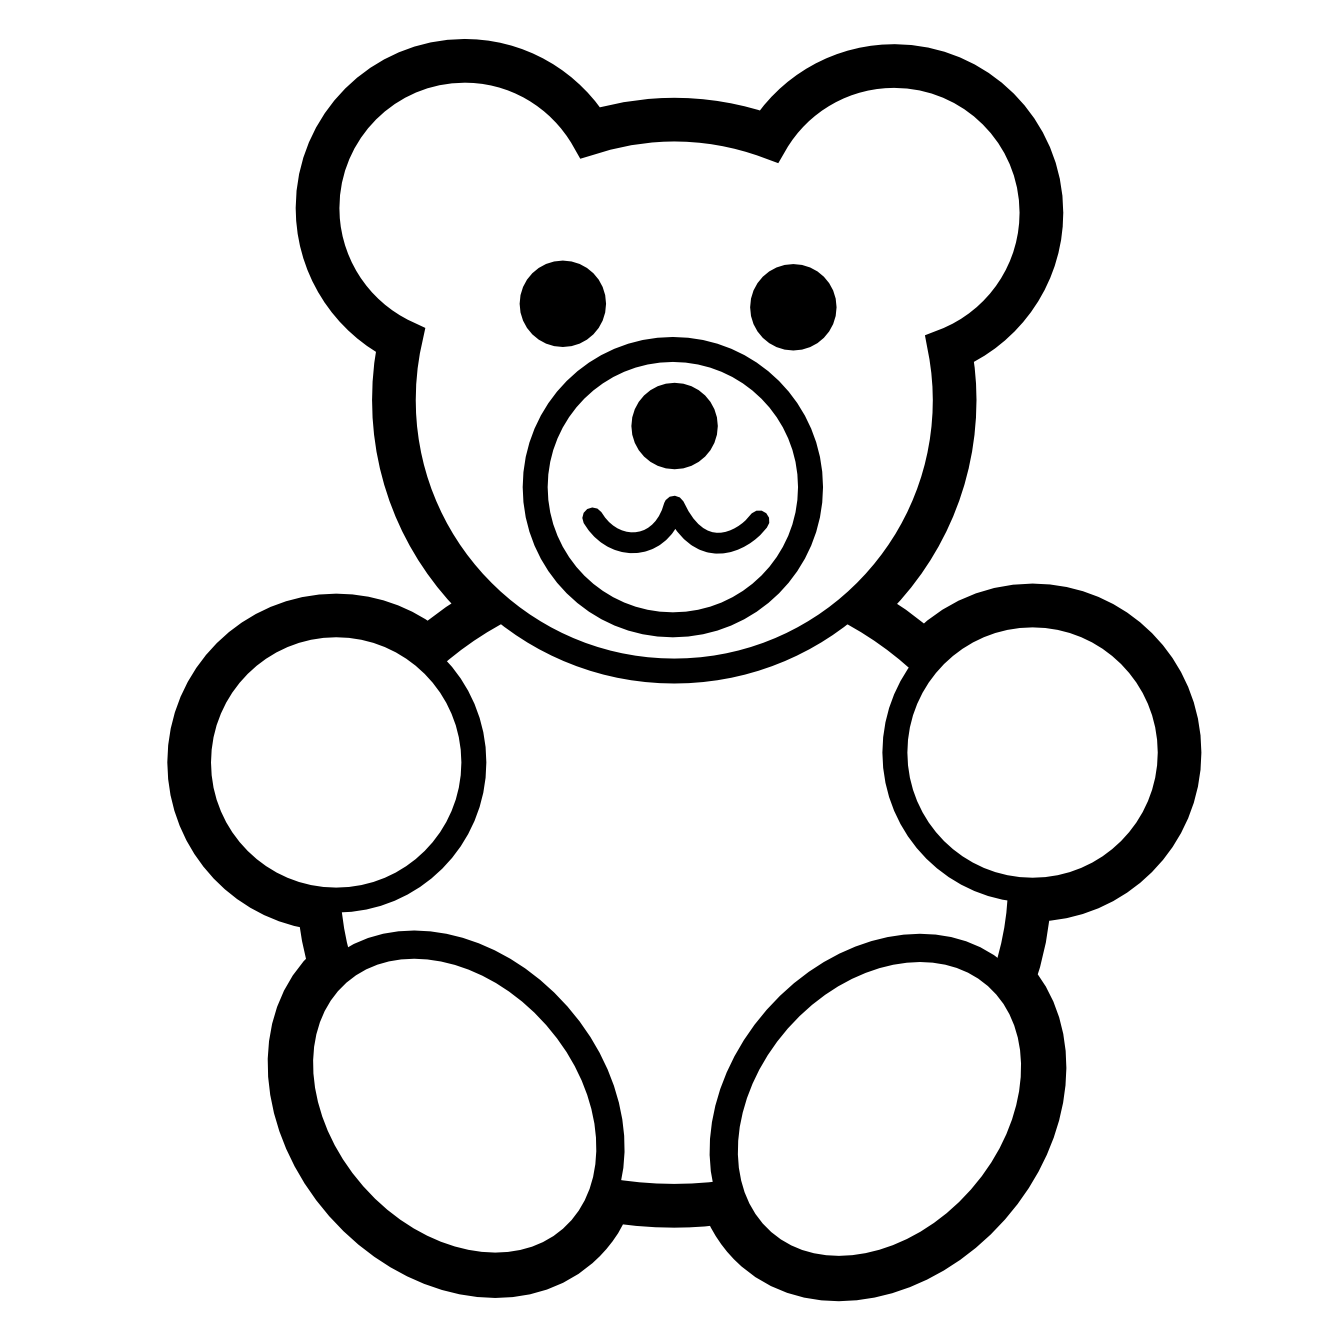 7th day of christmas black and white clipart clip art download christmas teddy bear clipart   net » Clip Art » Teddy Bear Icon ... clip art download